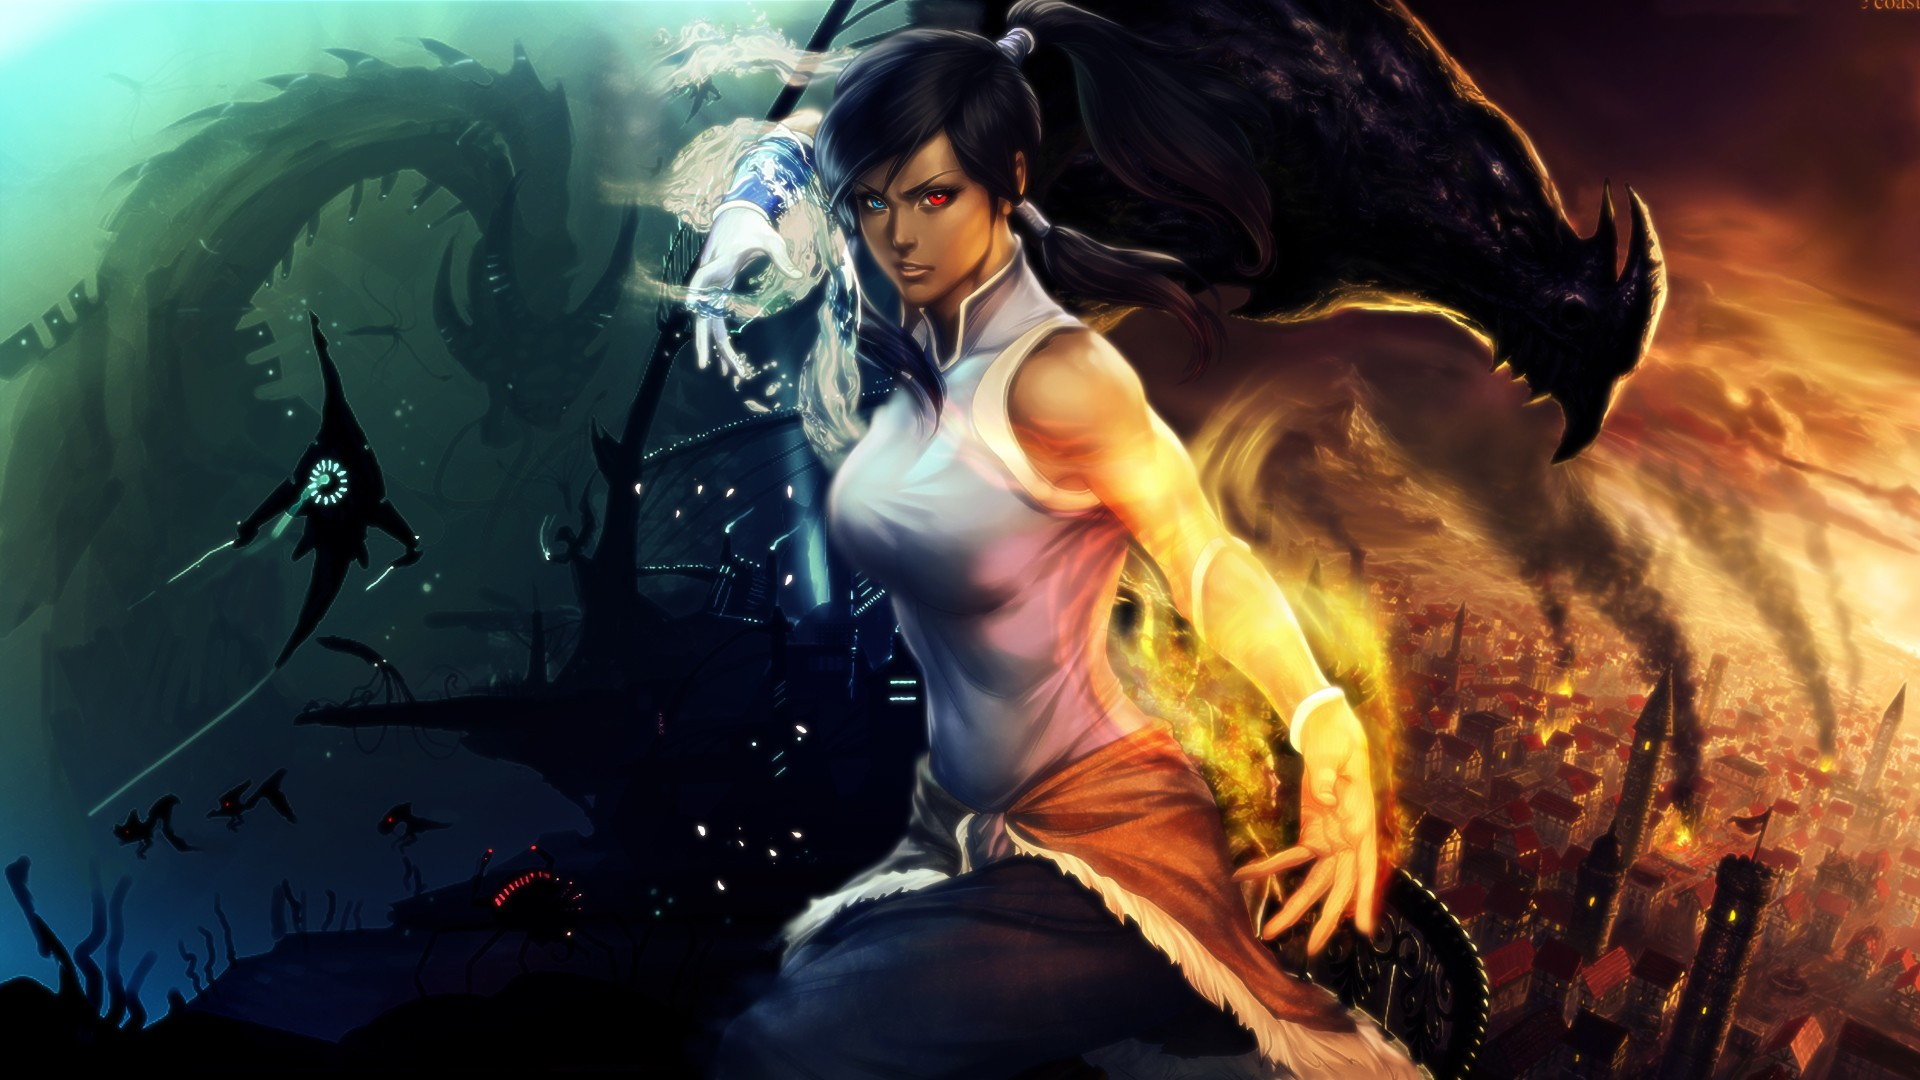 92 avatar the legend of korra hd wallpapers background images 92 avatar the legend of korra hd wallpapers background images wallpaper abyss voltagebd Images